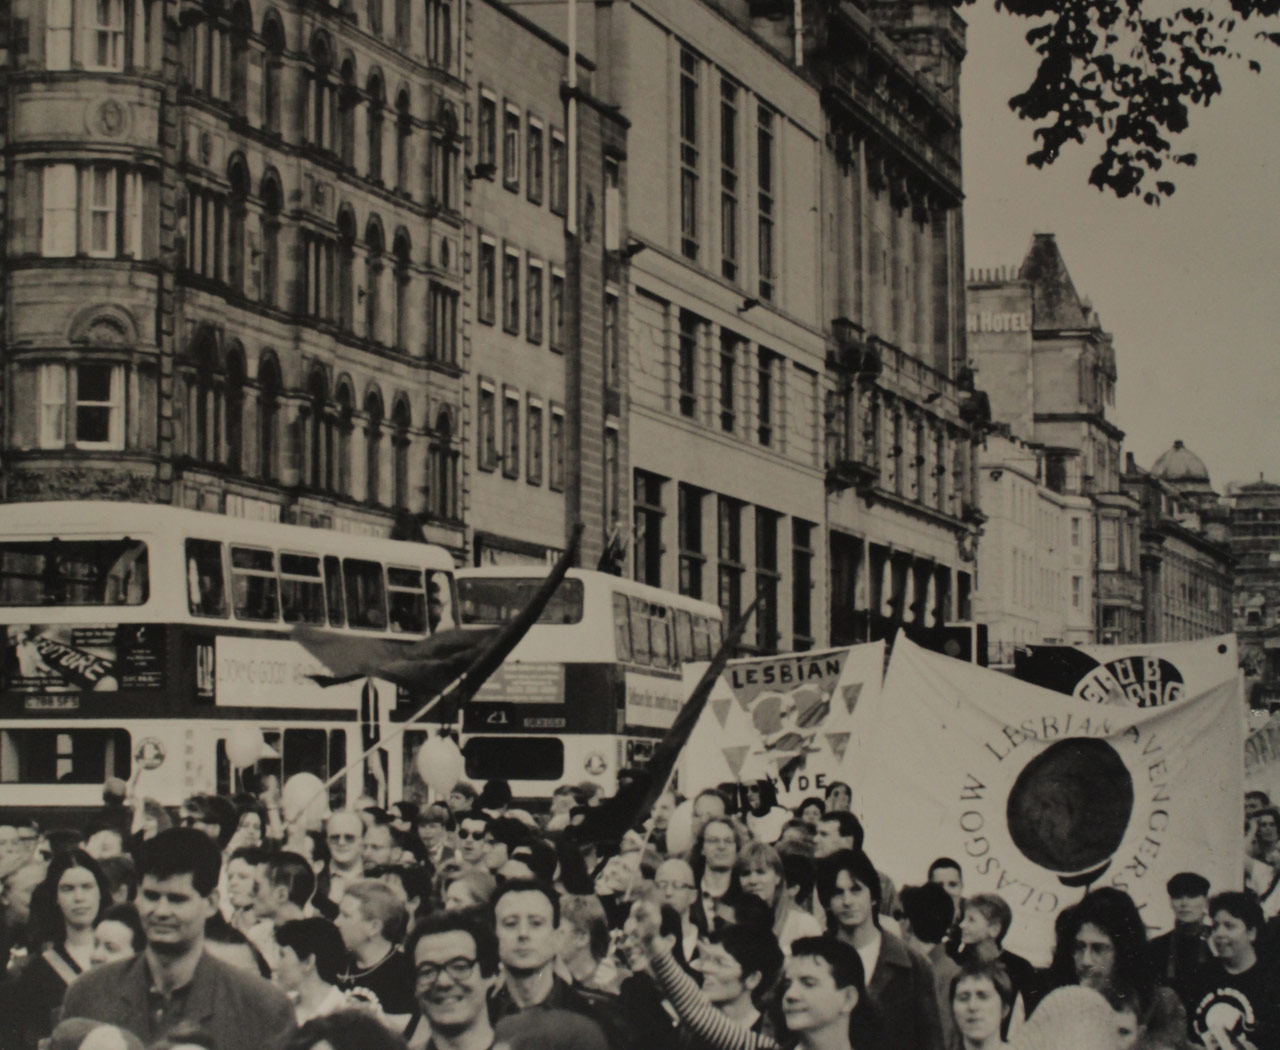 Pride March, Edinburgh, photograph by Sue John, 1995